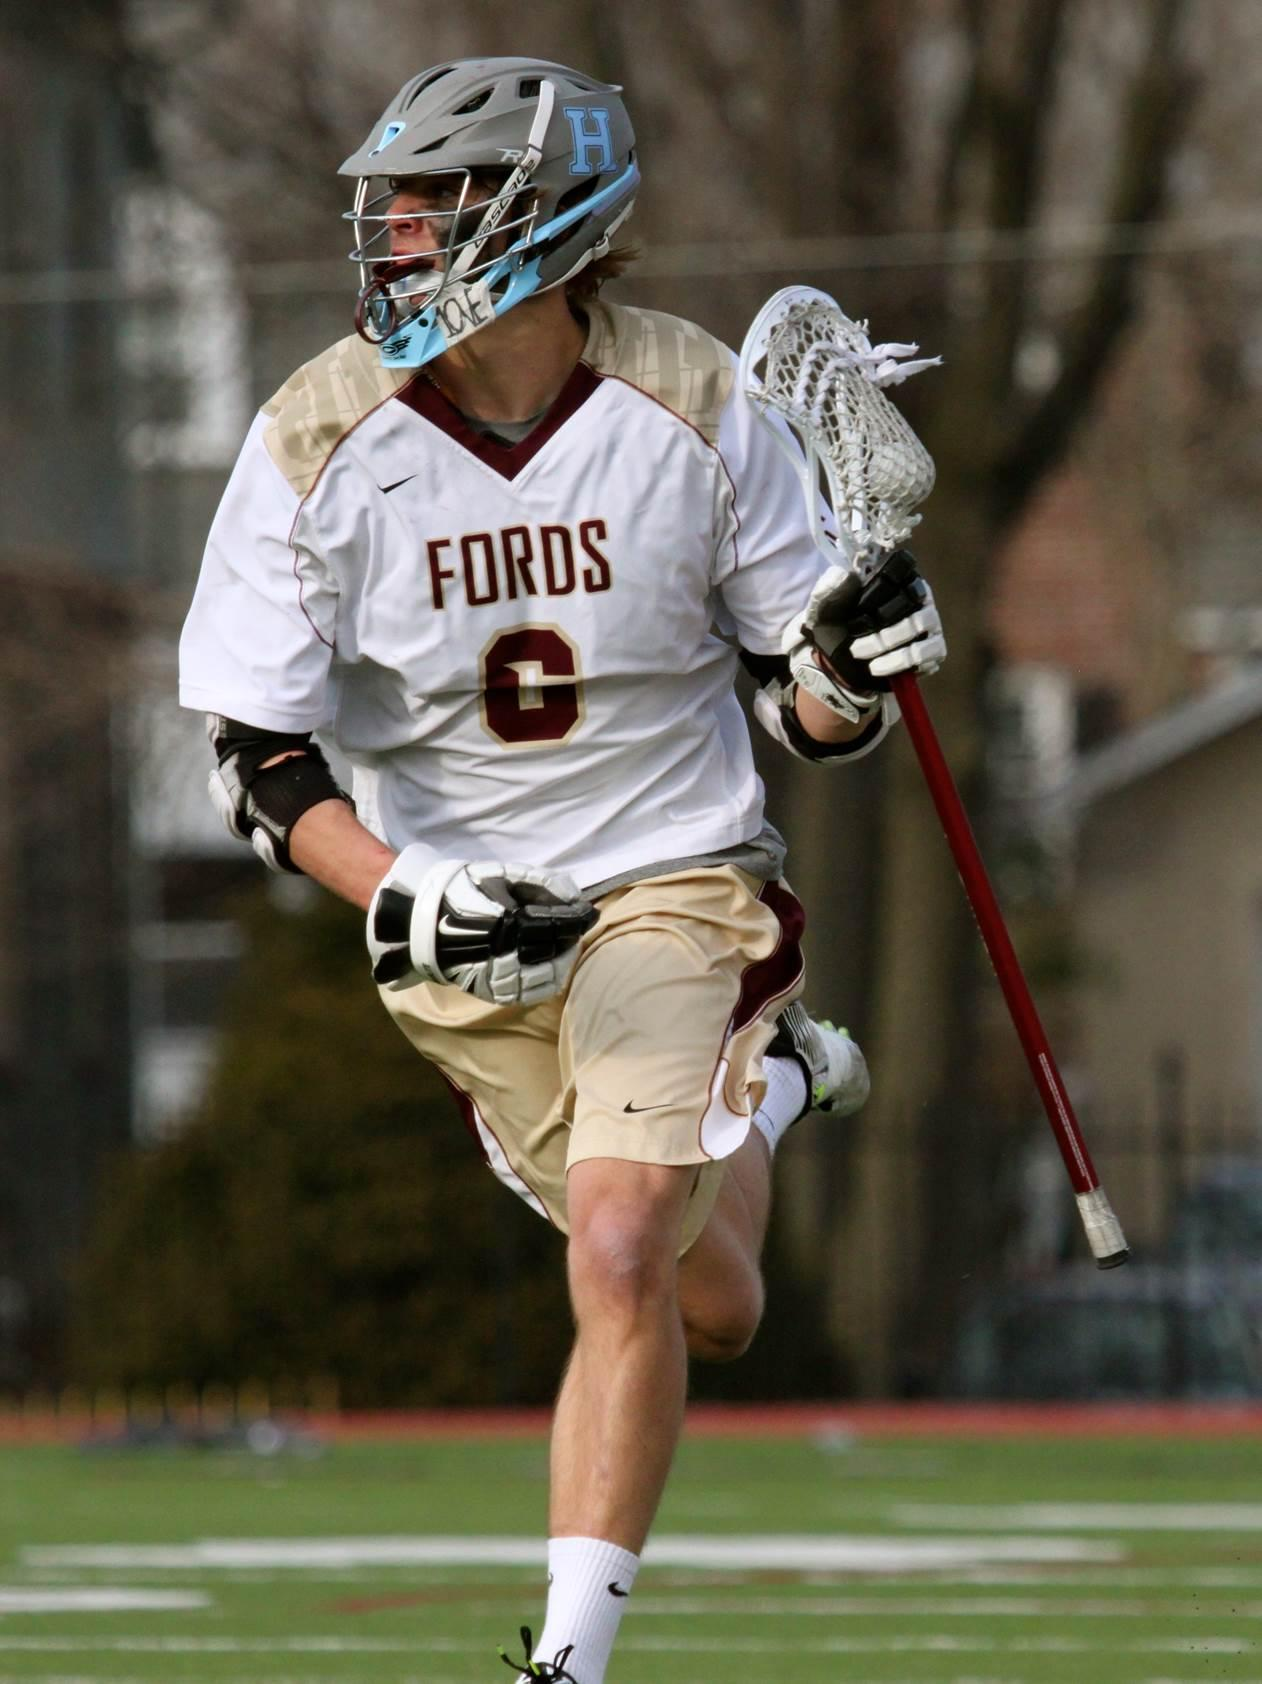 Haverford School senior midfielder Dox Aitken is the Phillylacrosse.com 2016 Co-Player of the Year (Photo by Lane Shima)